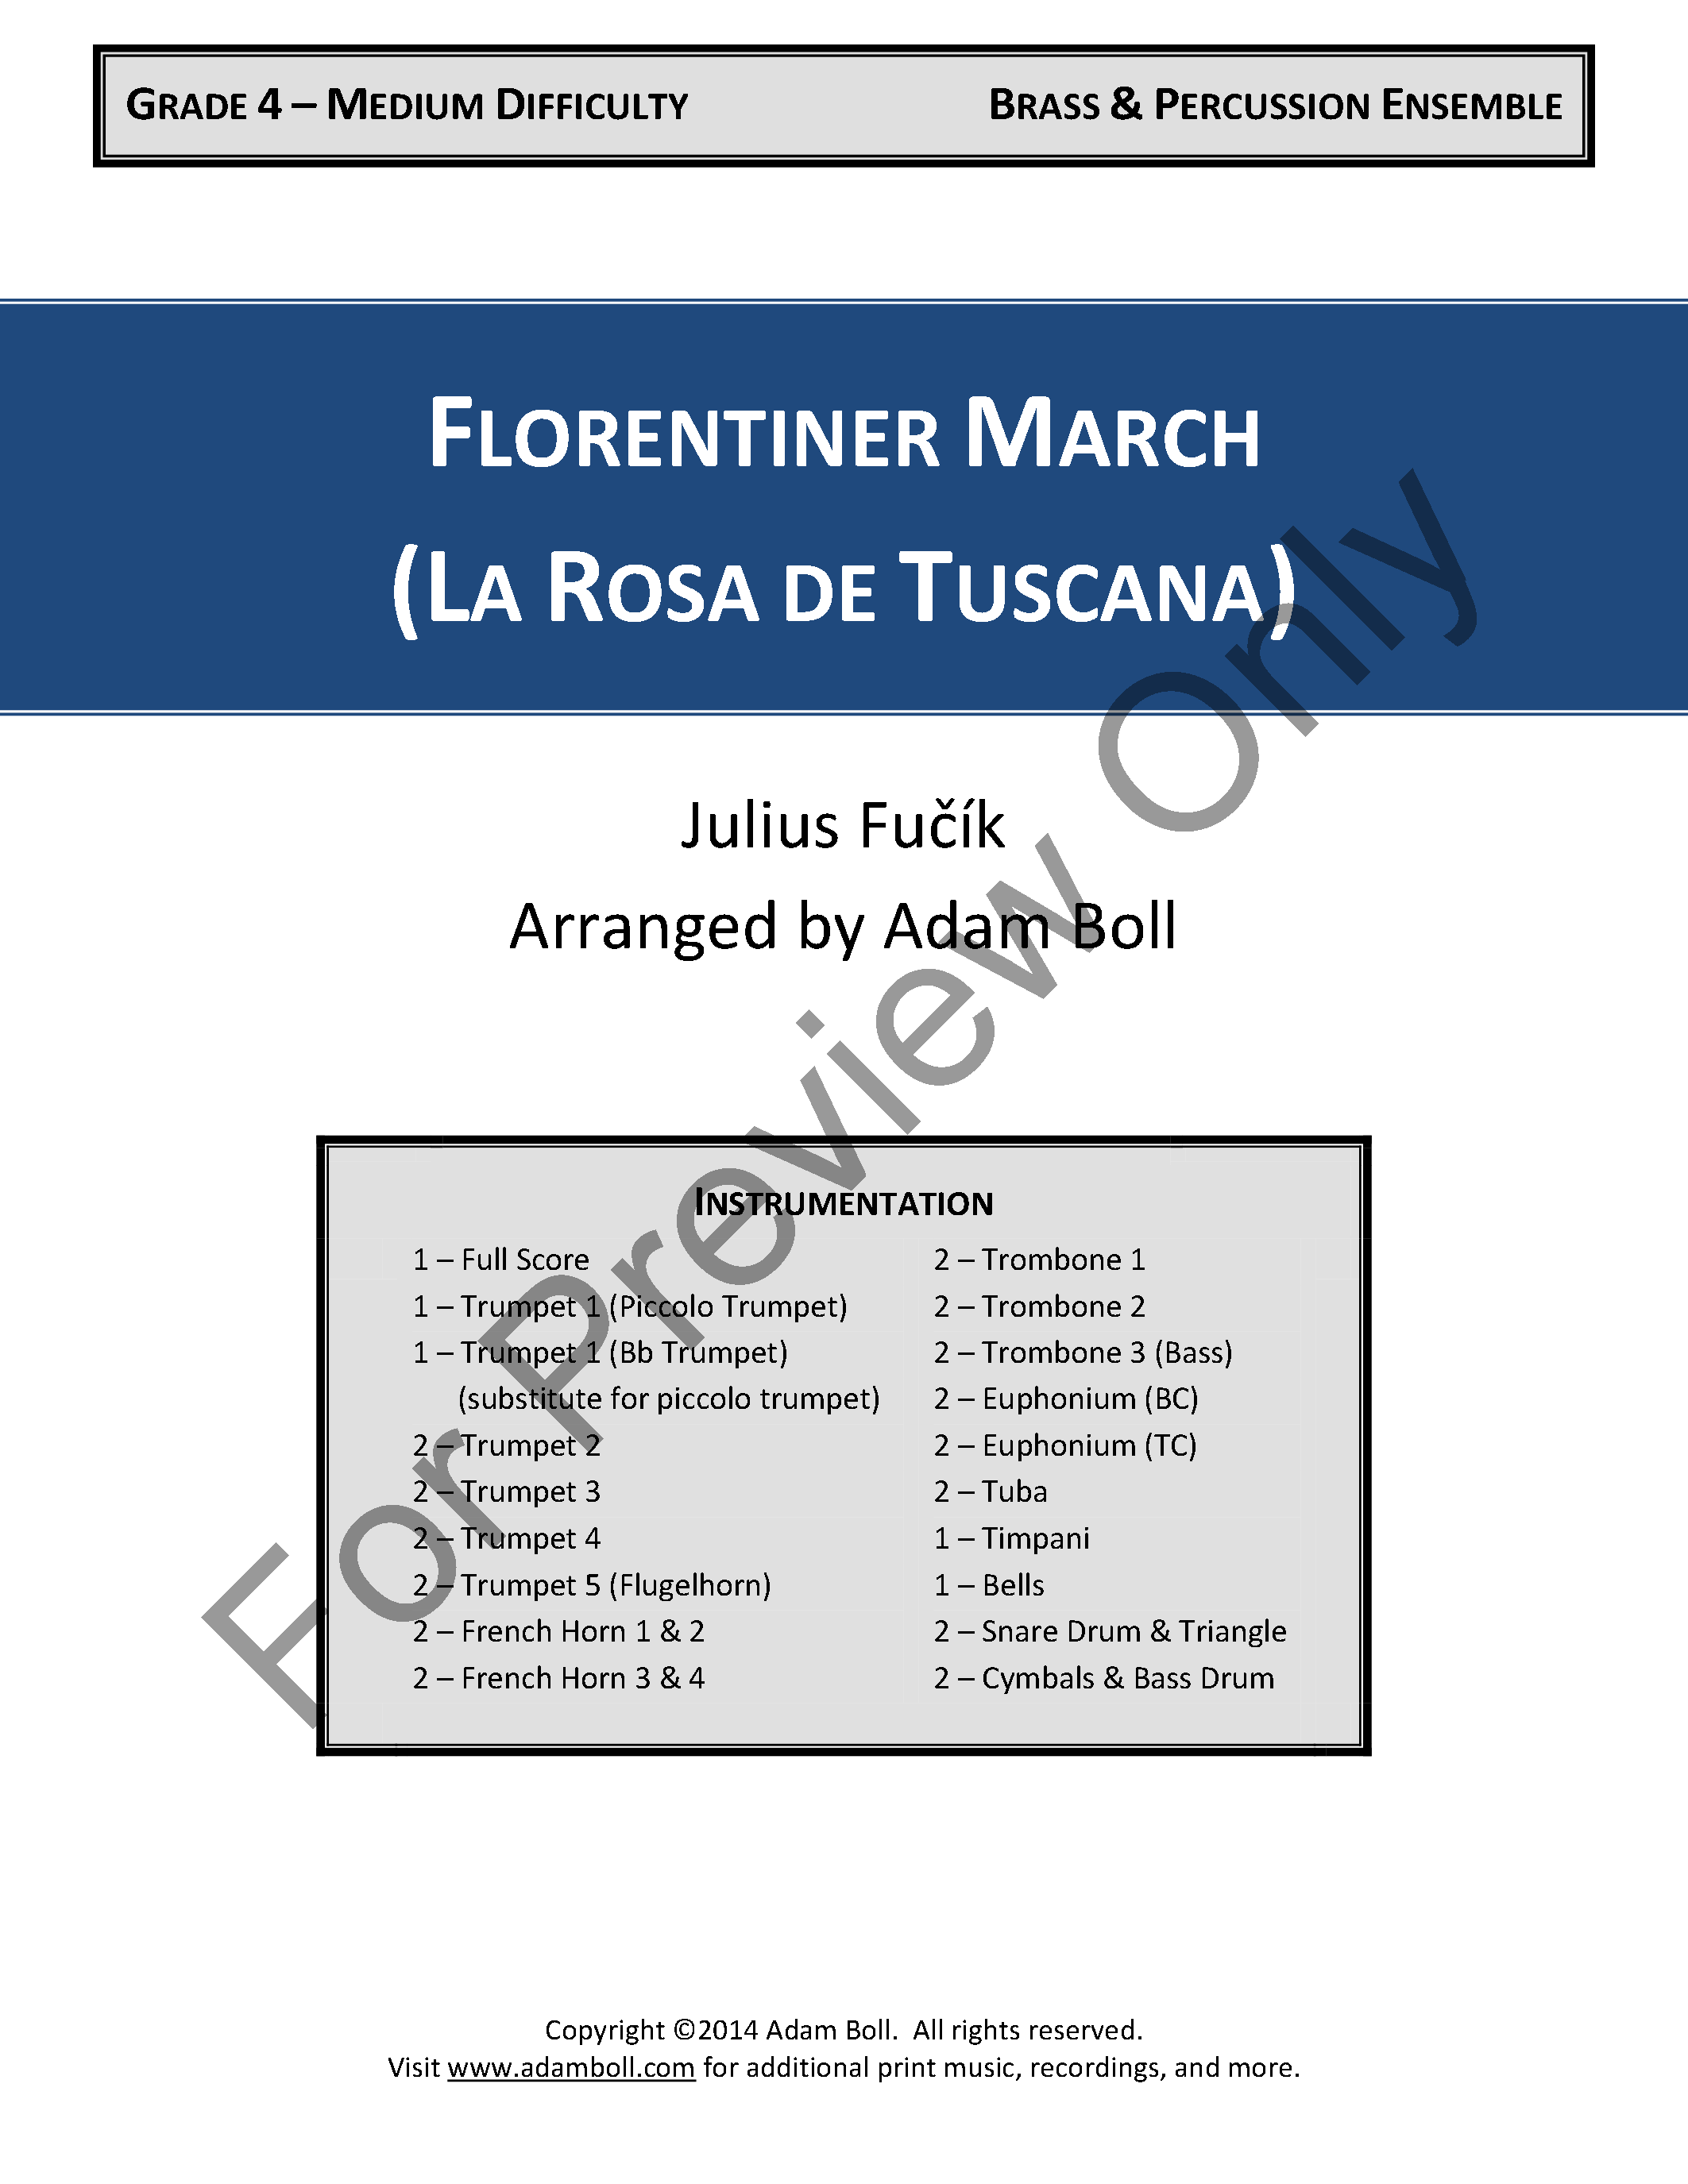 Florentiner March Thumbnail